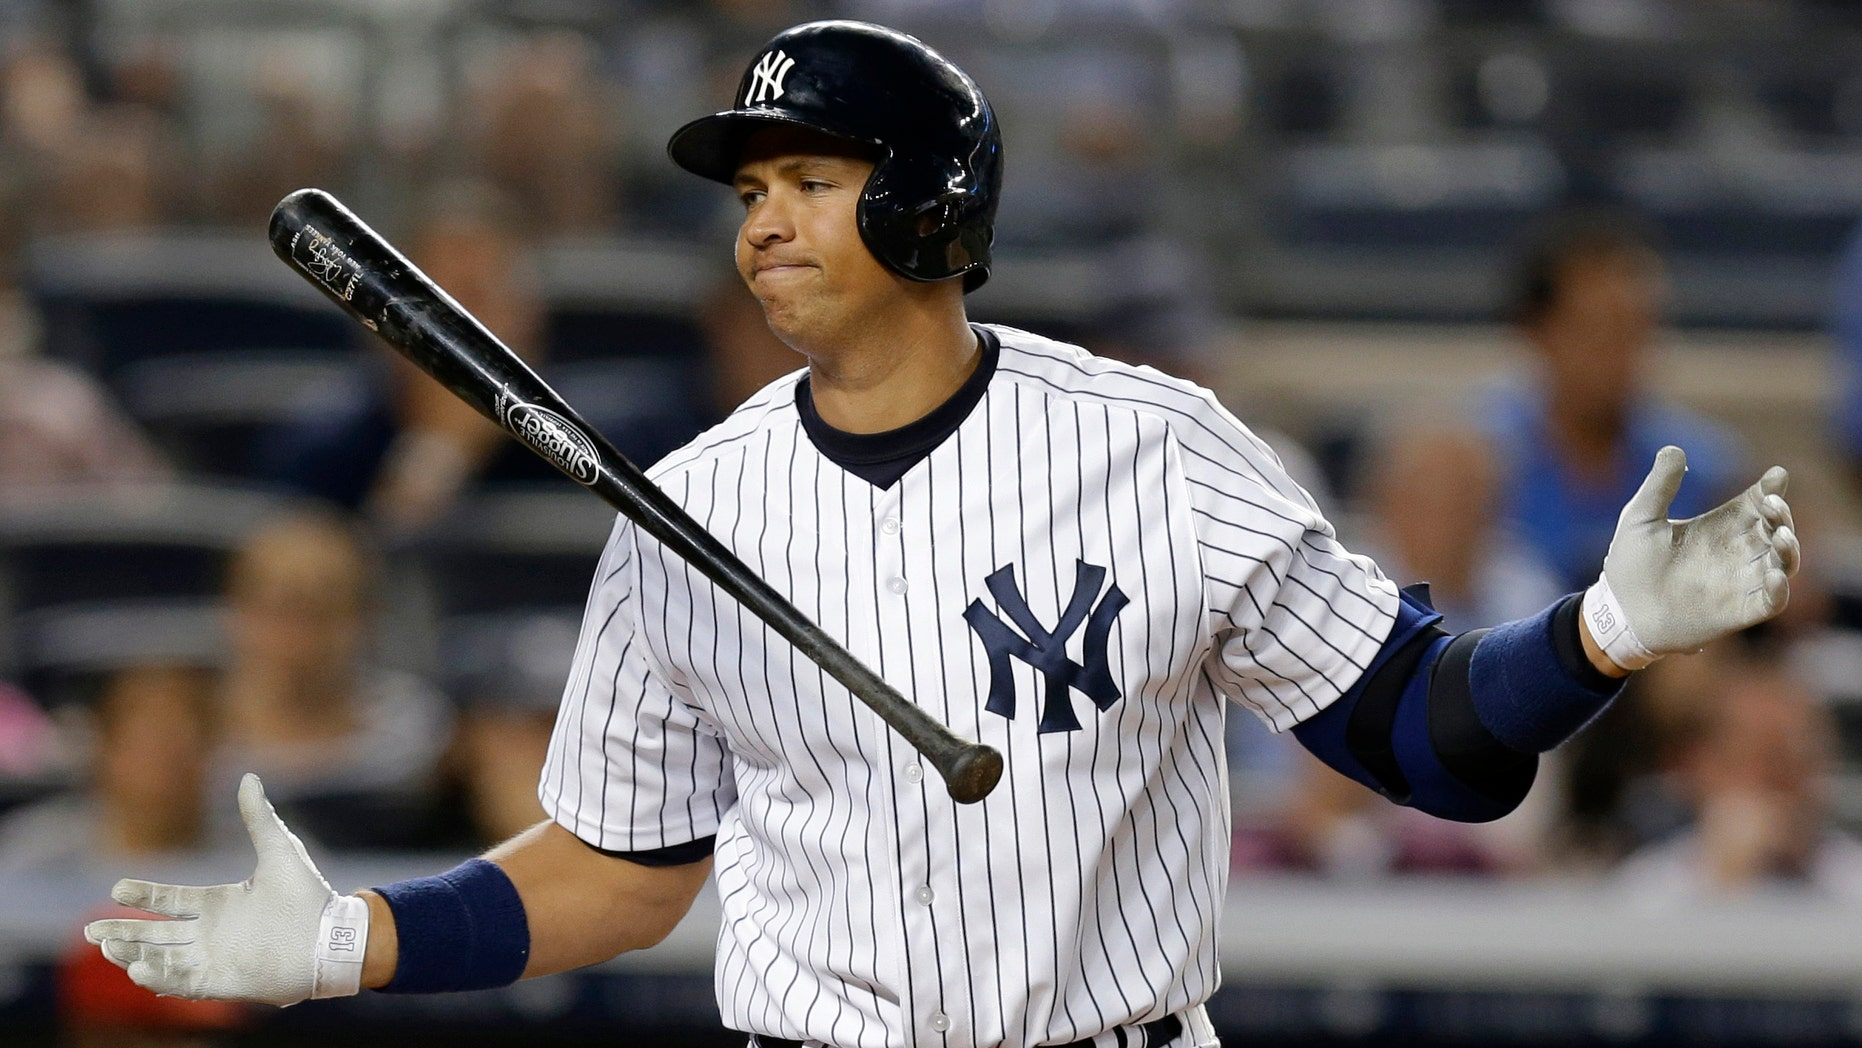 FILE - In this Aug. 13, 2013 file photo, New York Yankees' Alex Rodriguez reacts after striking out in the seventh inning of a baseball game against the Los Angeles Angels in New York.  Rodriguezâs drug suspension has been reduced to 162 games, potentially sidelining the slugger for the entire 2014 season.  The New York Yankees third baseman was suspended for 211 games on Aug. 5 by baseball Commissioner Bud Selig. The penalty was given for alleged violations of the sport's drug agreement and labor contract and followed Major League Baseball's investigation of the Biogenesis of America anti-aging clinic, which was accused of distributing banned performance-enhancing drugs.  (AP Photo/Kathy Willens, File)